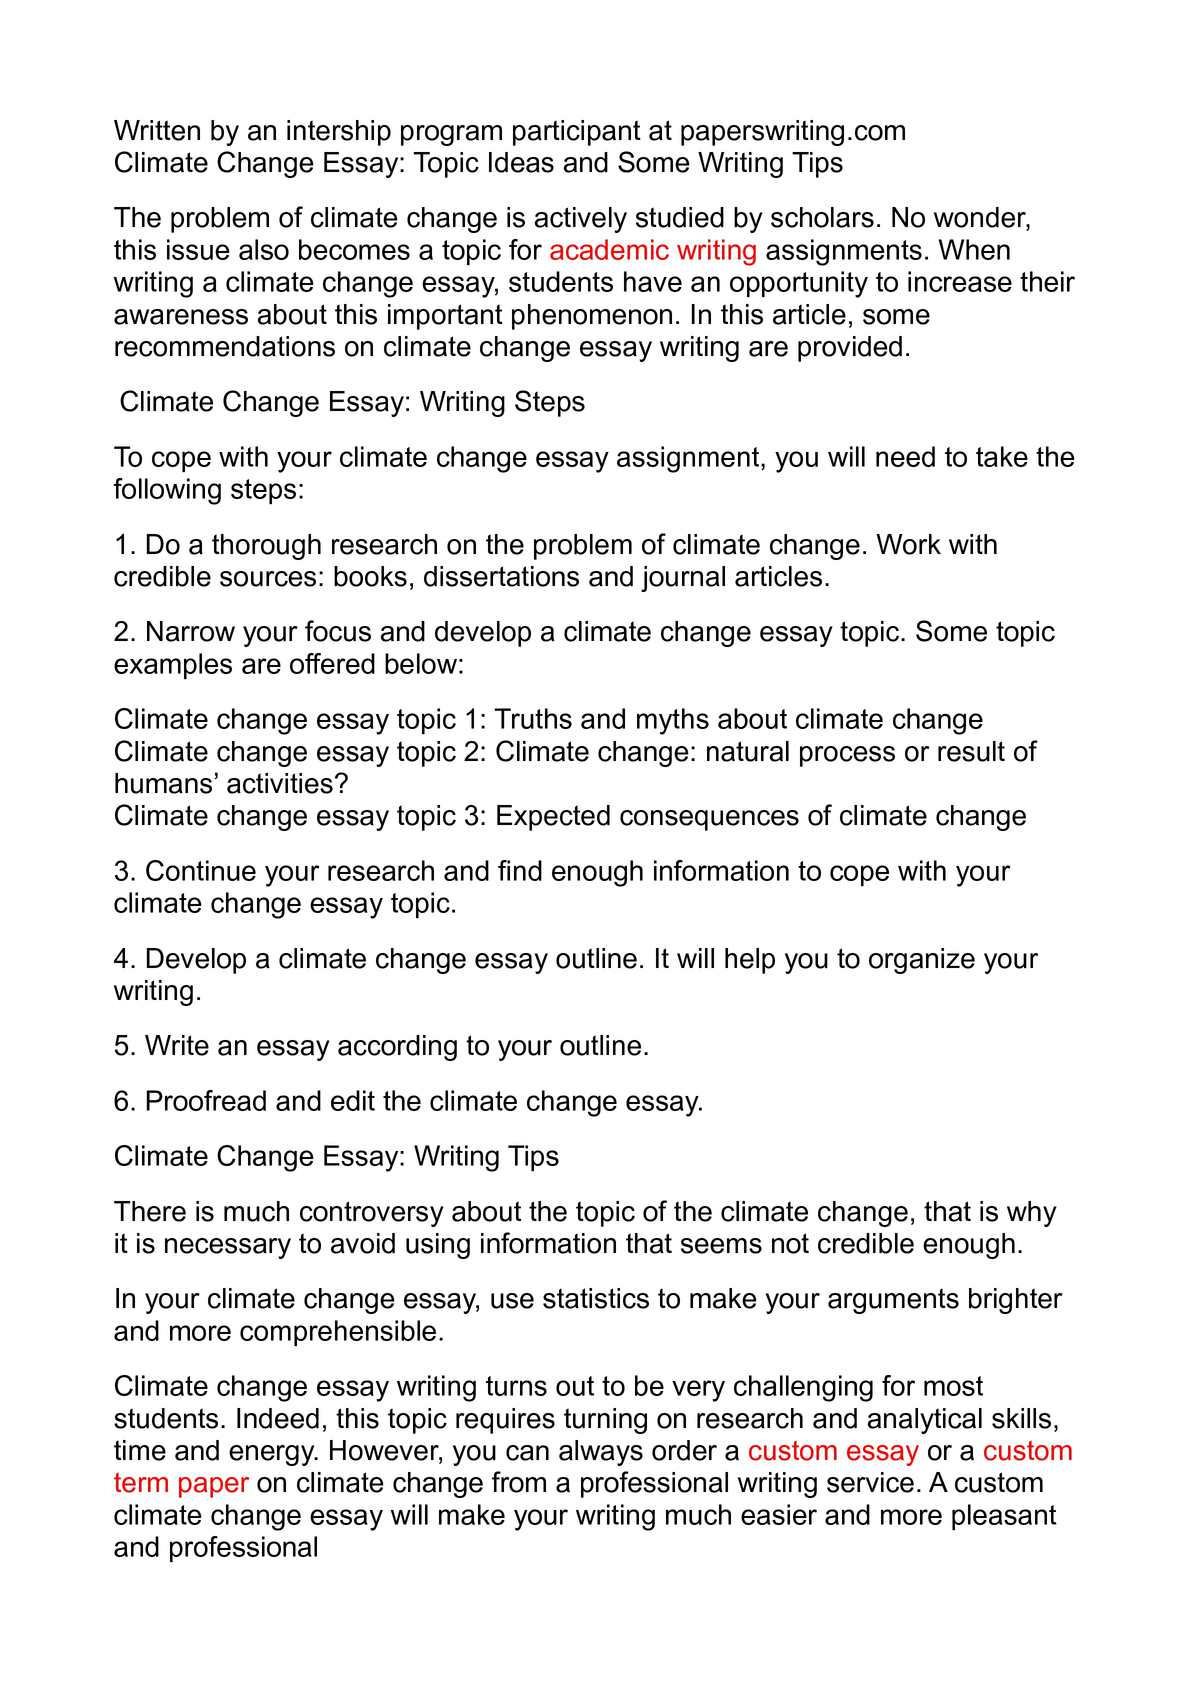 global warming solution essay an essay describing a person an  essay for climate change calamatildecopyo climate change essay topic ideas and some writing tips